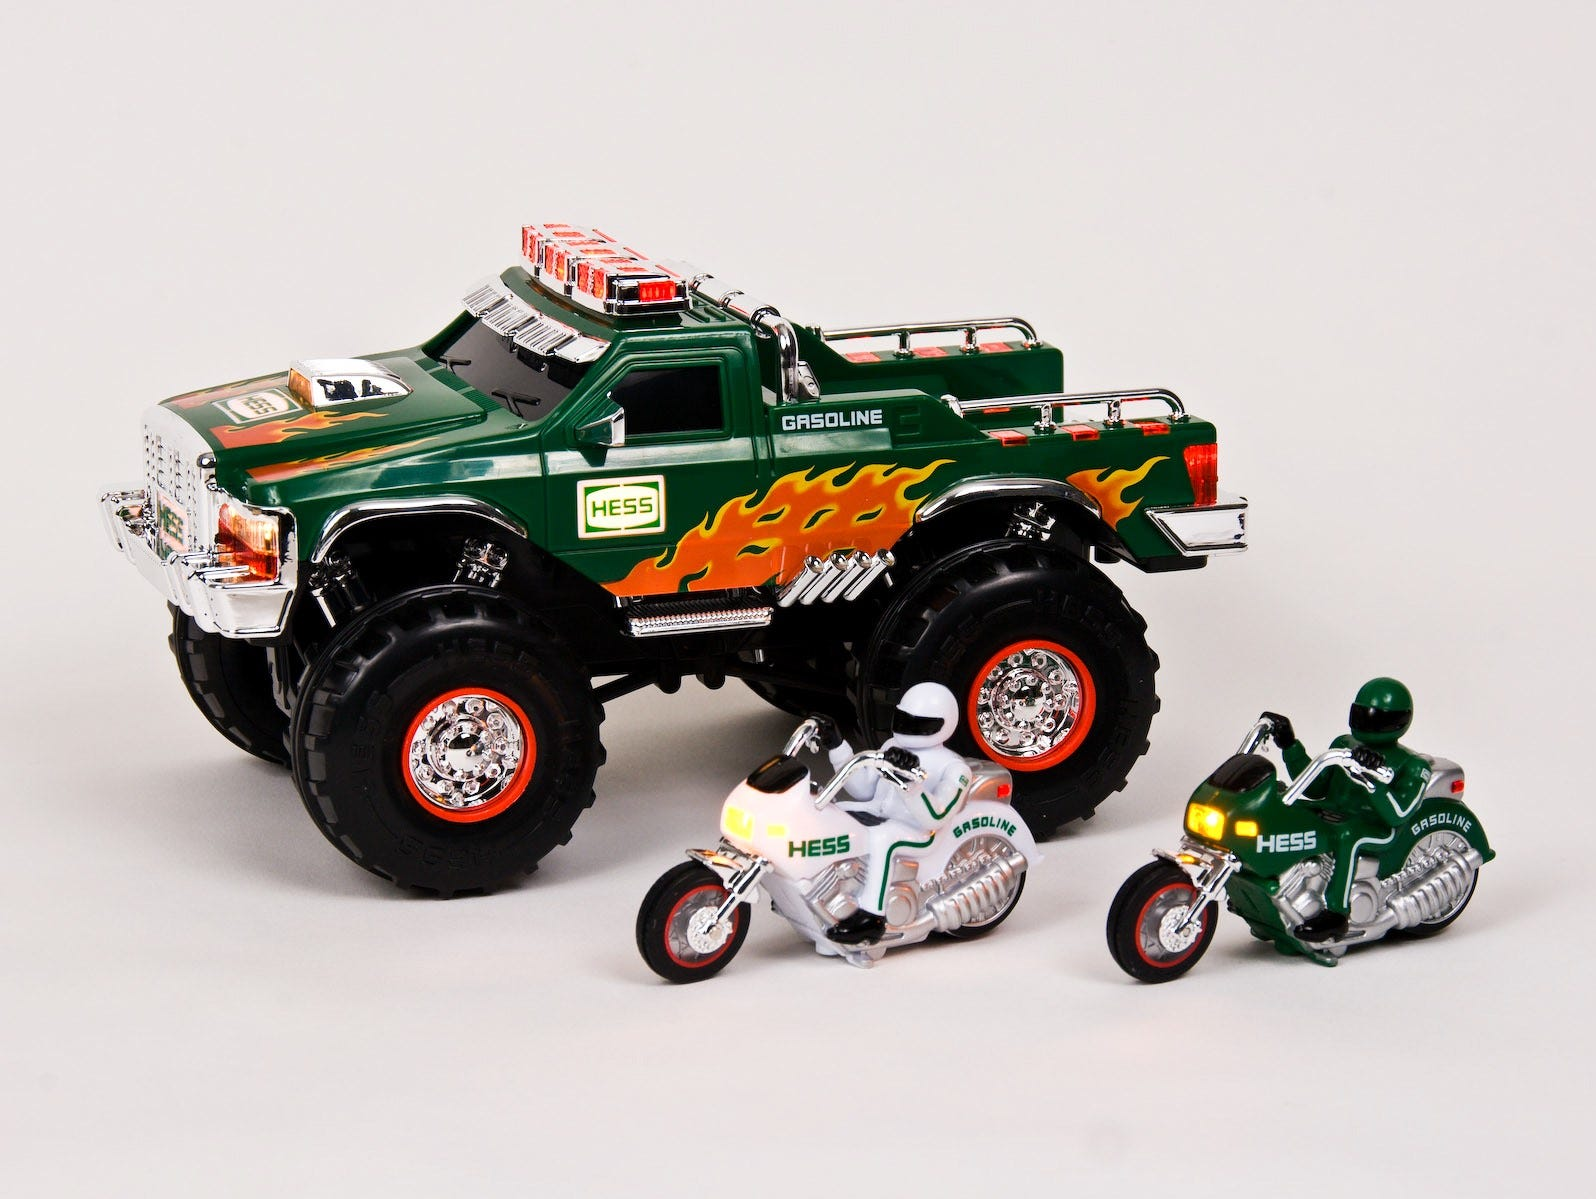 The 2007 Hess toy truck.